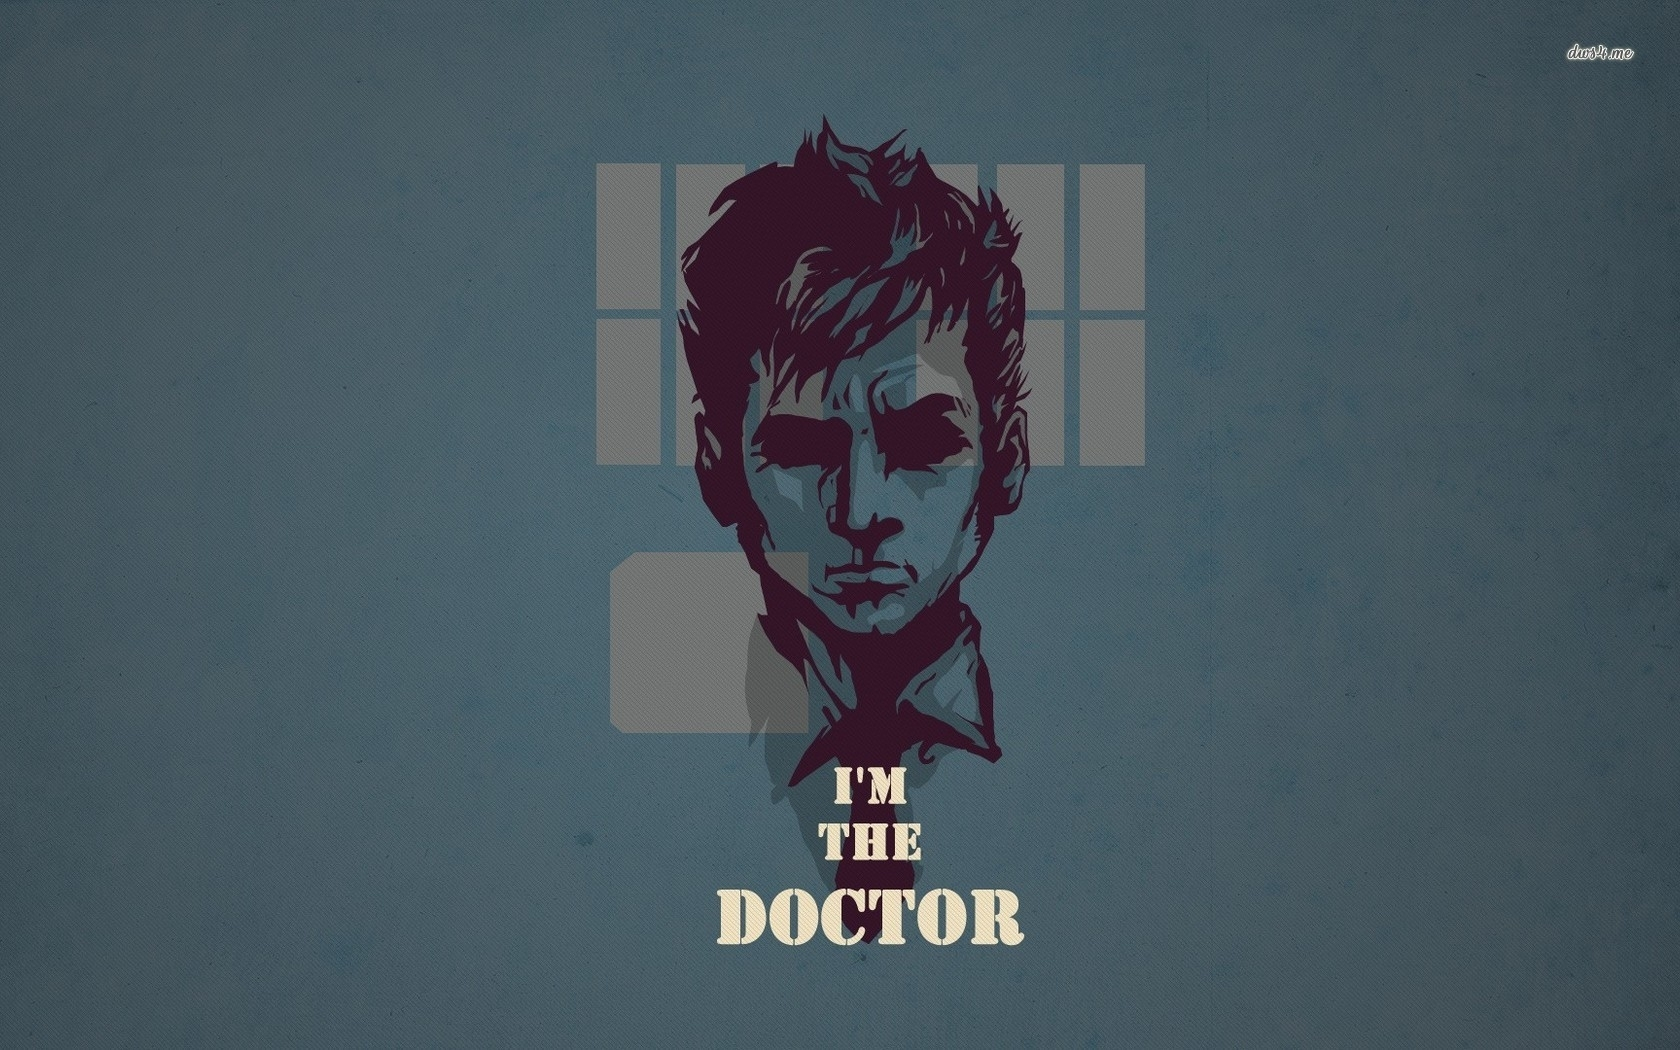 14414) doctor who android hd wallpaper - walops